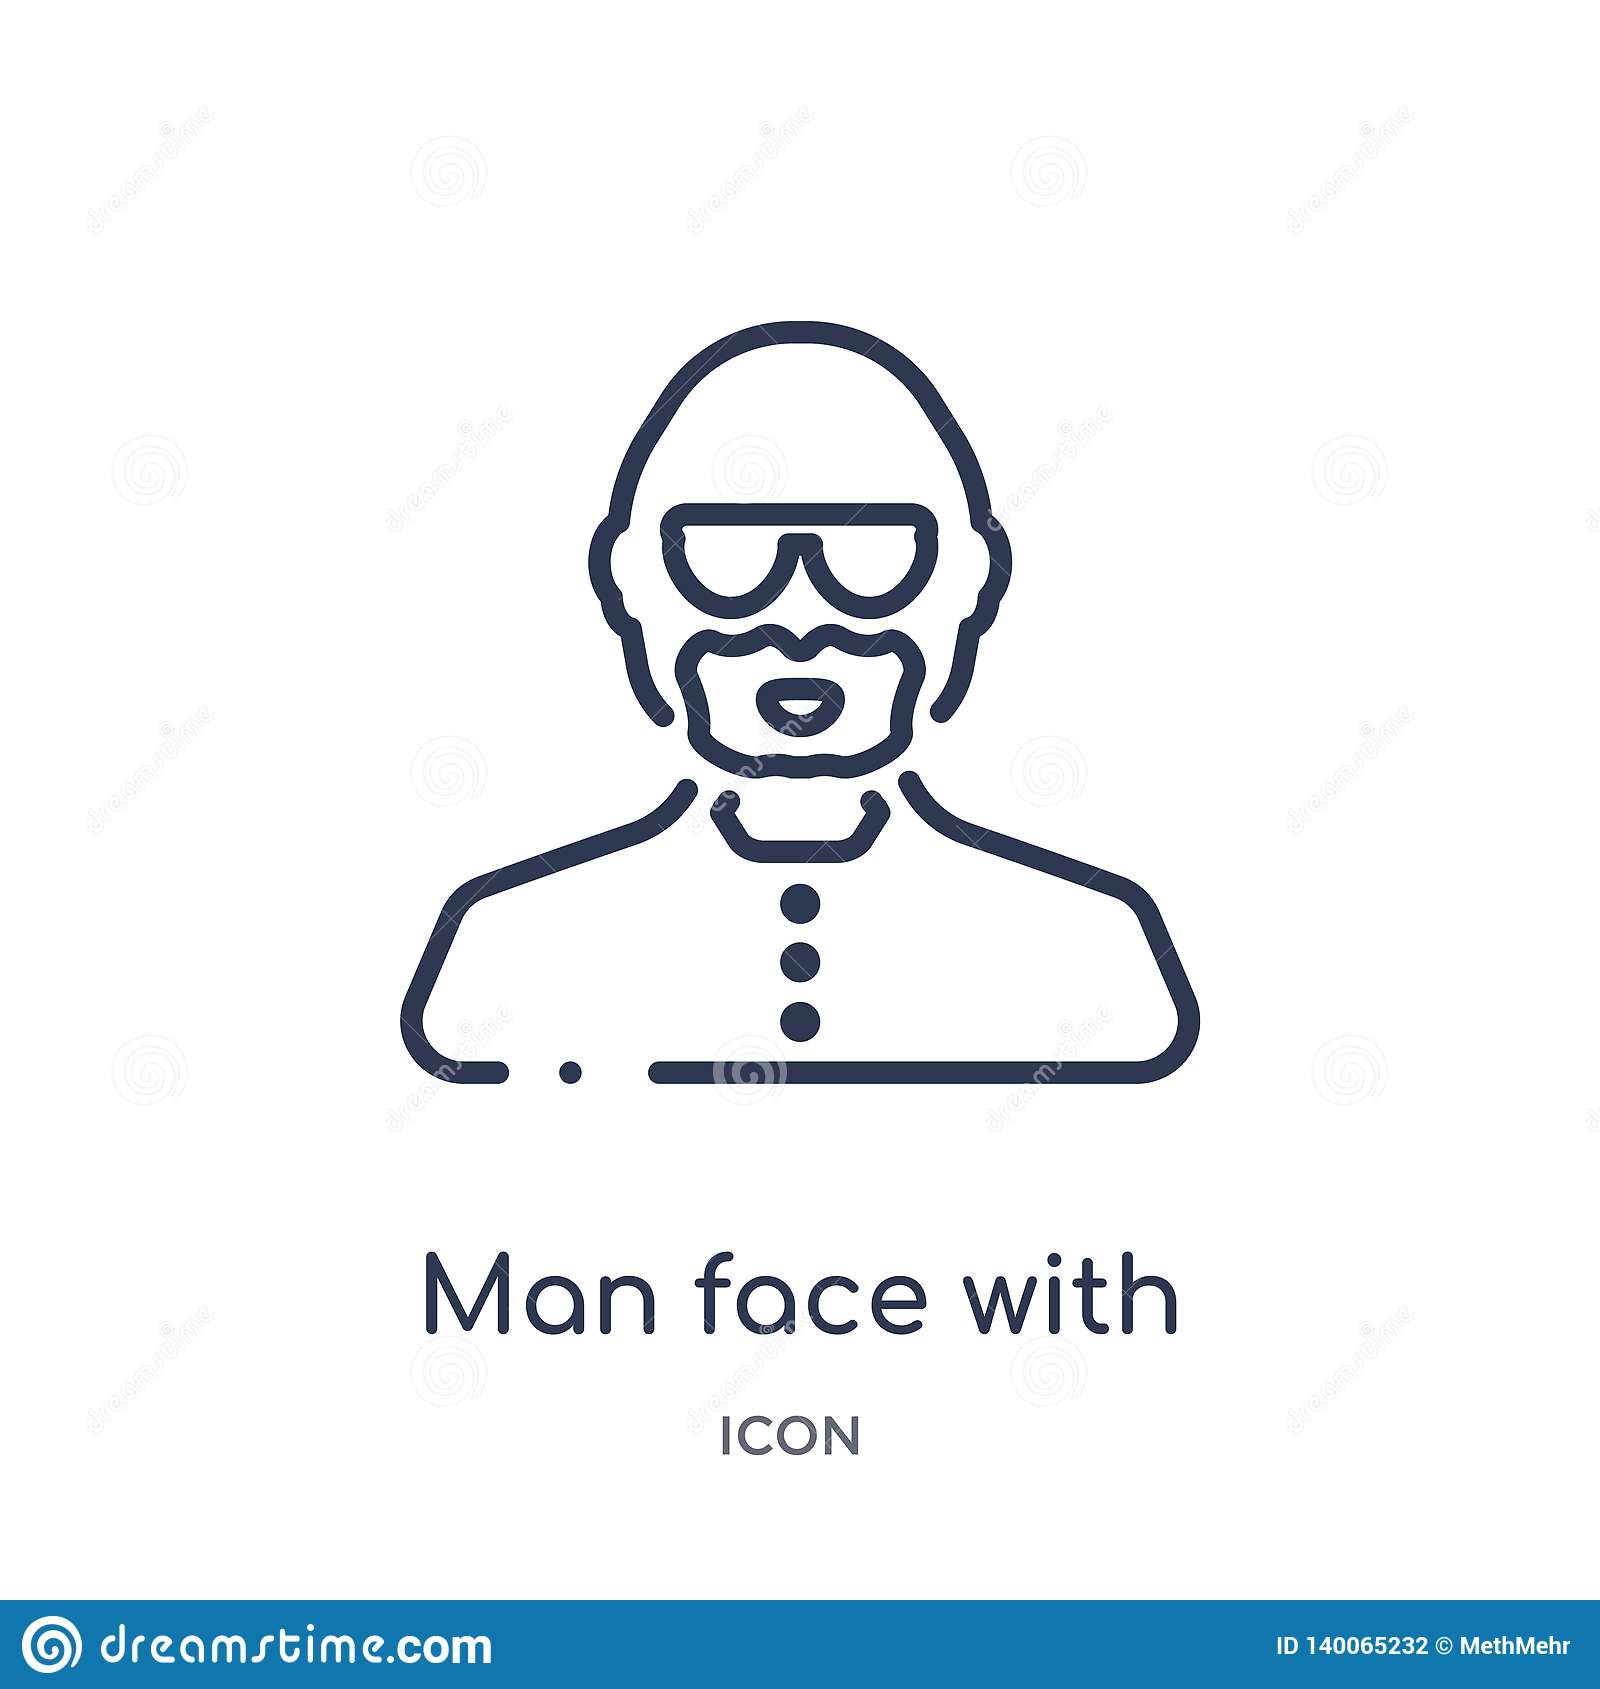 man face with glasses and goatee icon from people outline collection. Thin line man face with glasses and goatee icon isolated on